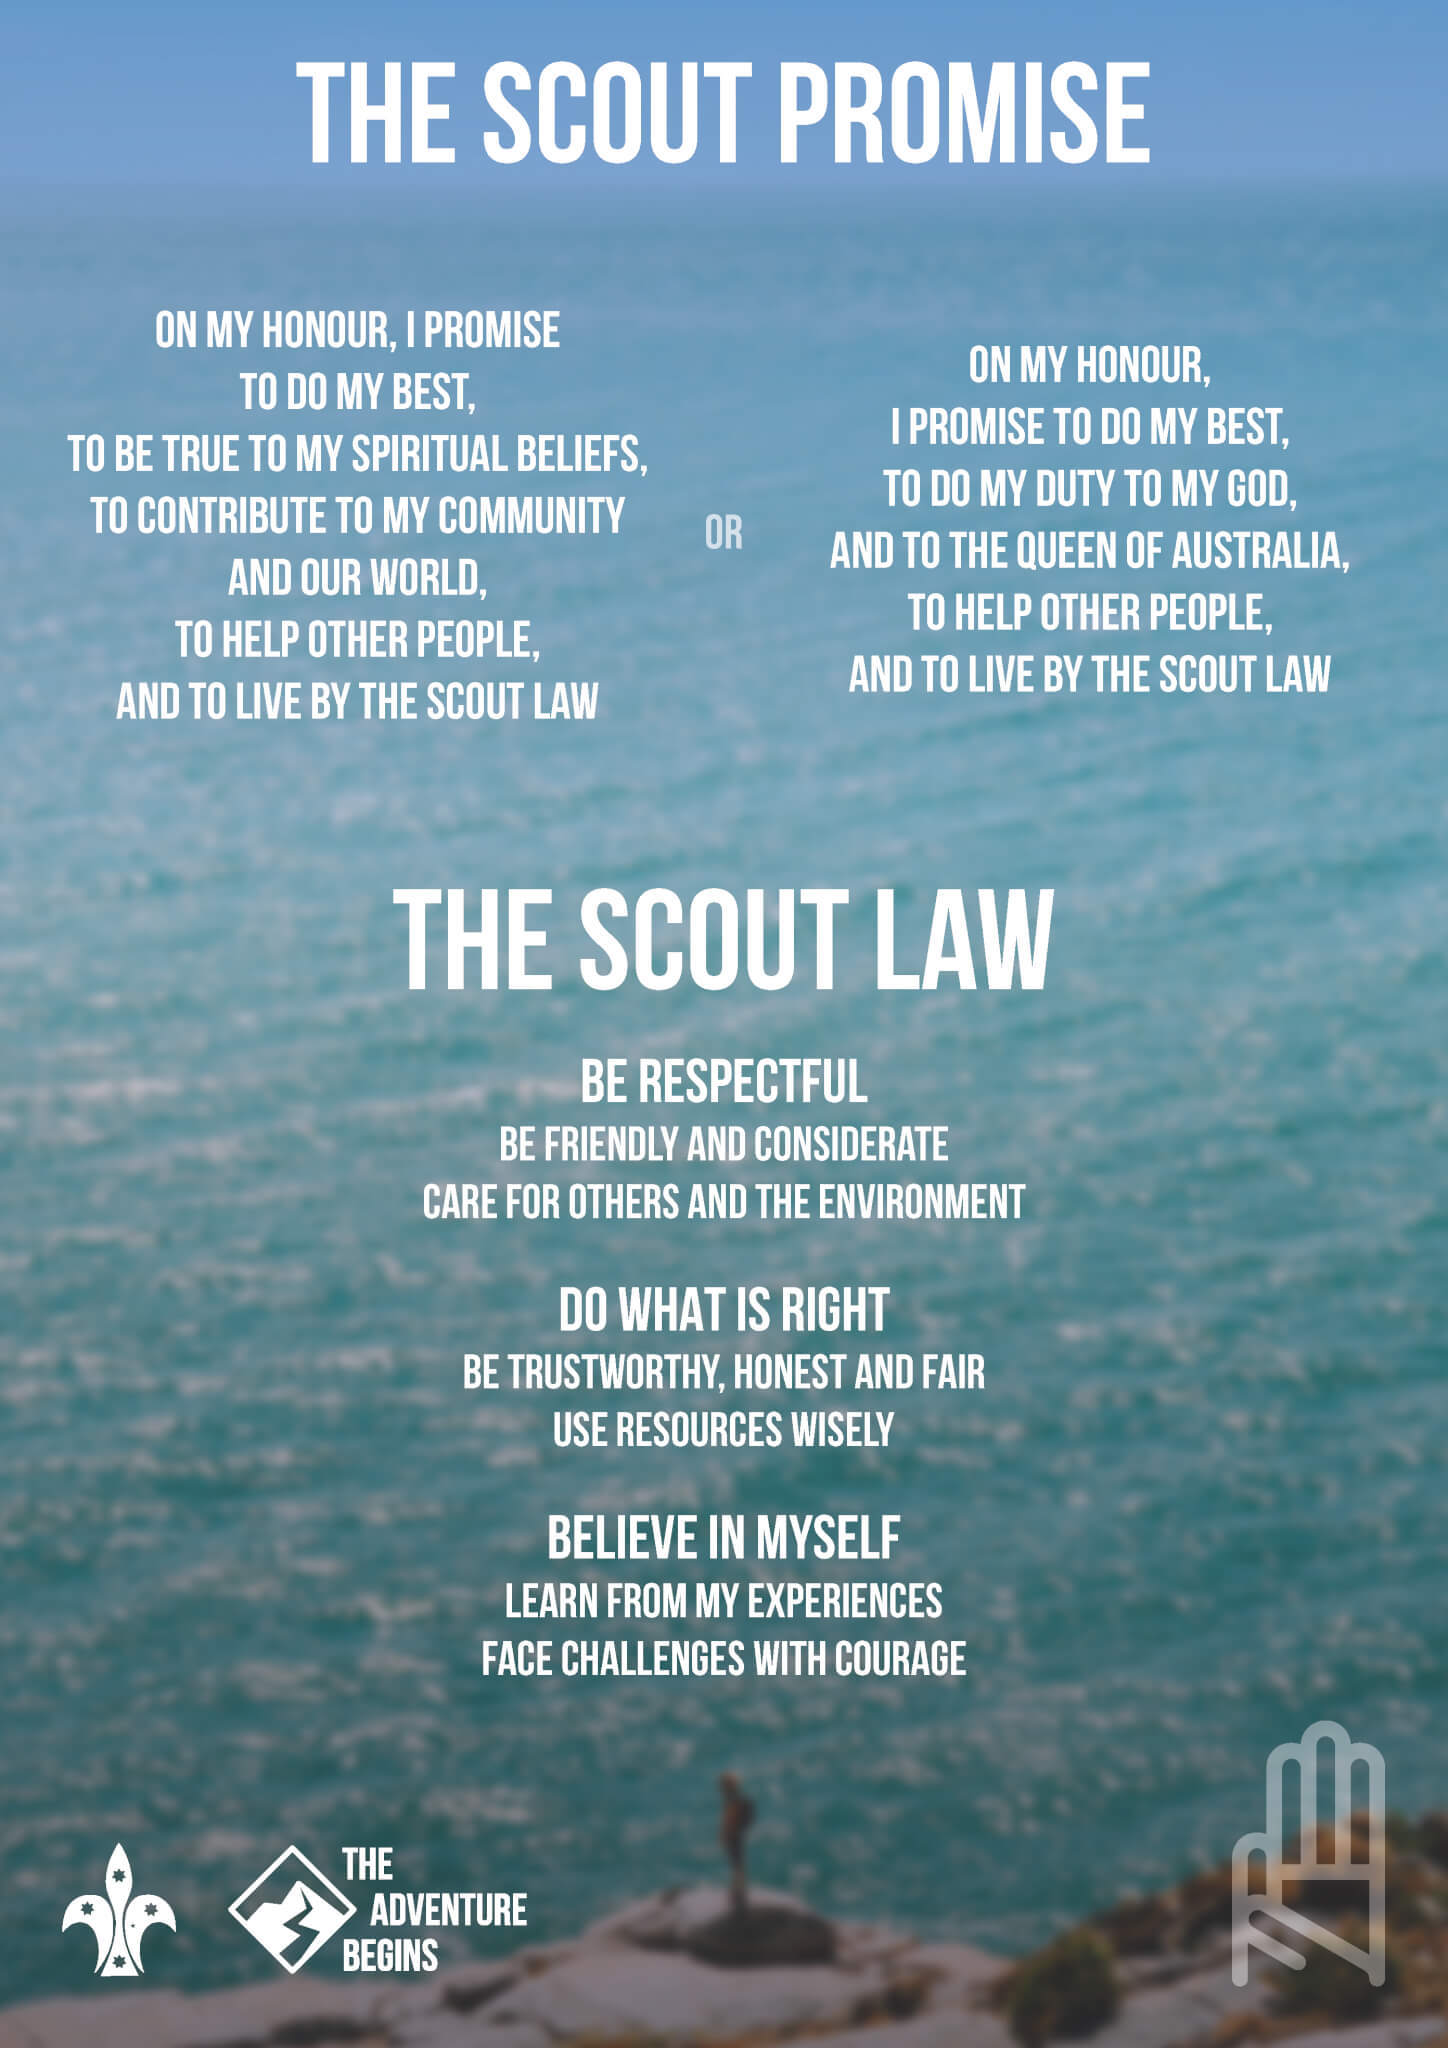 picture regarding Cub Scout Oath Printable known as The Journey Commences - Assurance and Regulation Scouts Australia